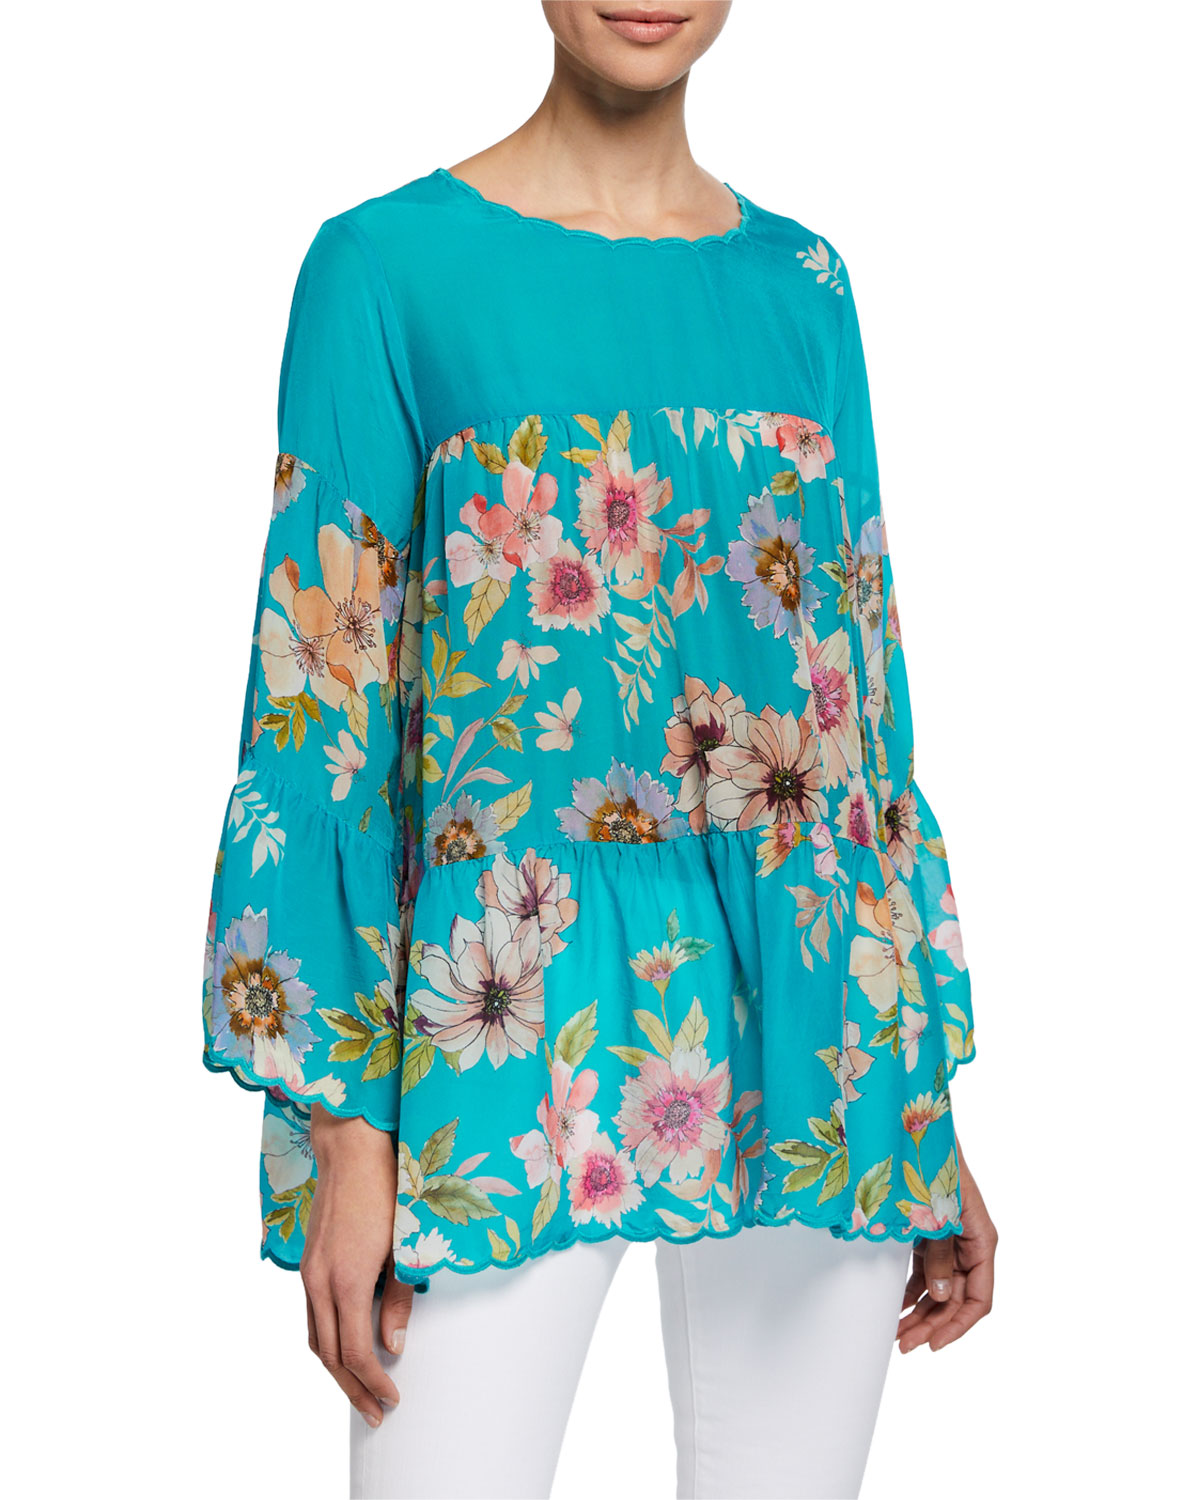 Johnny Was Fyson Floral Print Scoop Neck Flared Sleeve Blouse